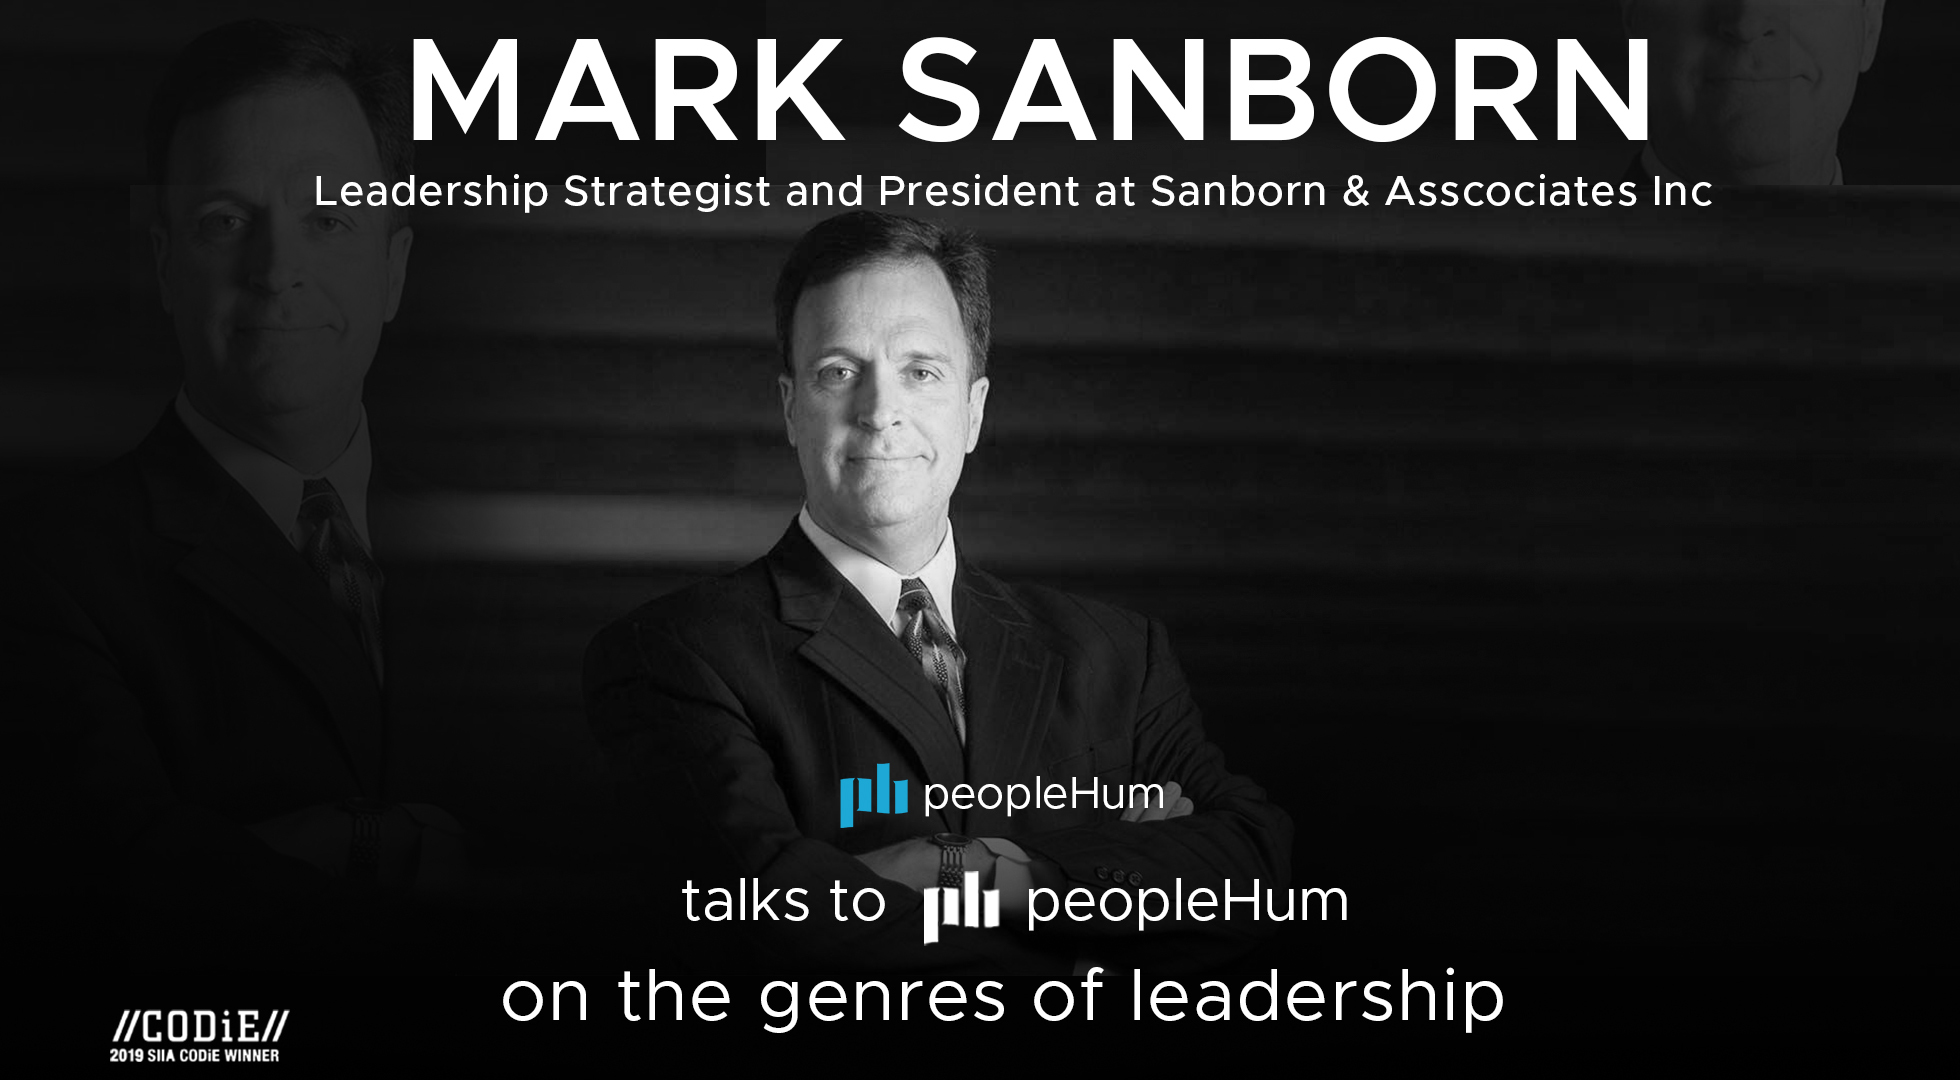 Leadership and Inclusion - Mark Sanborn [Interview]